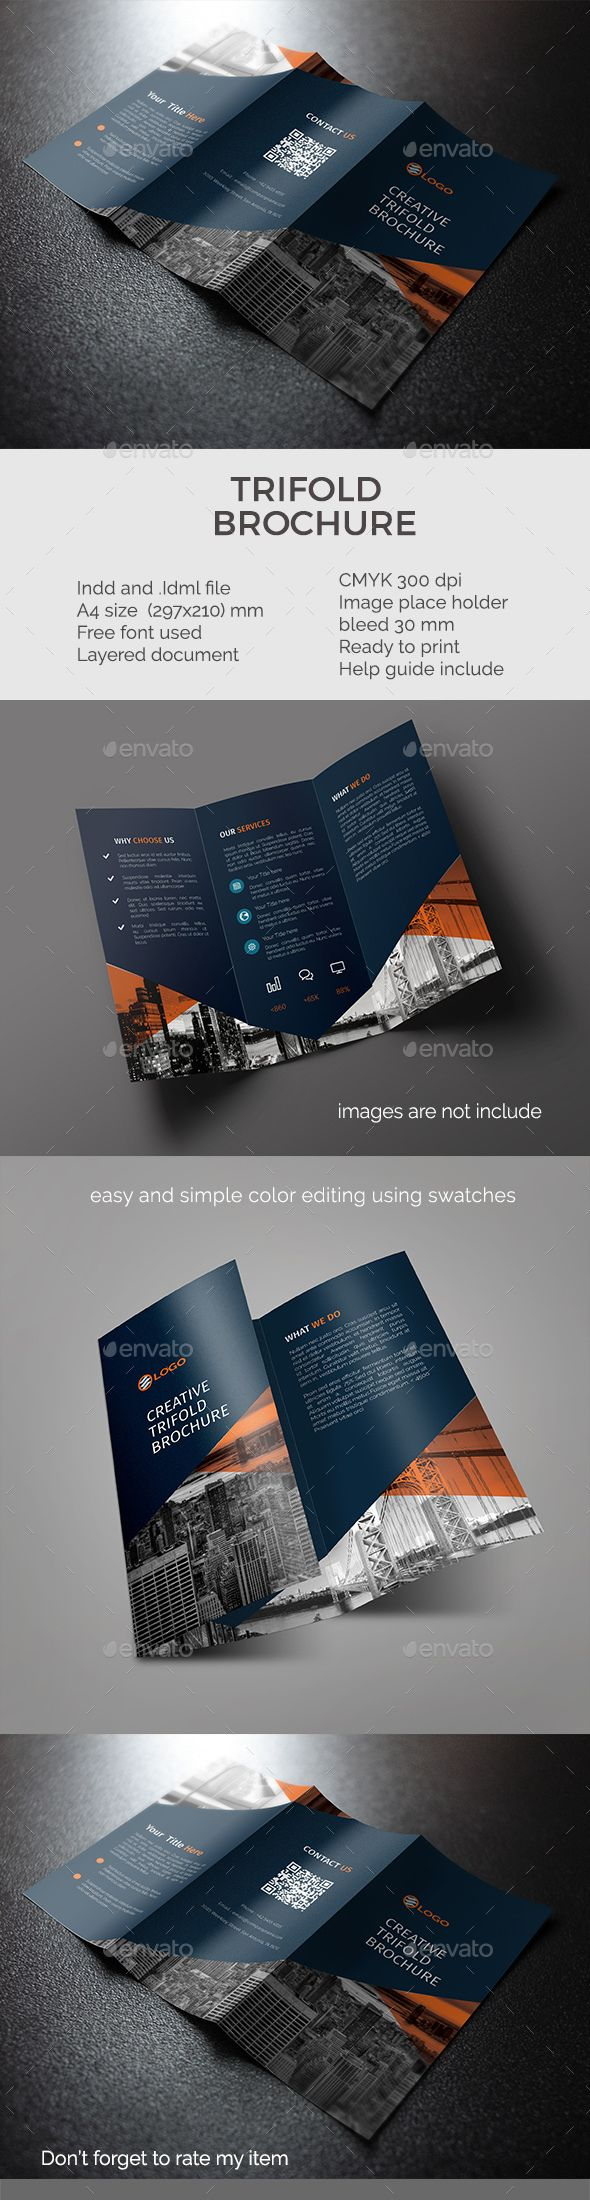 Trifold Brochure - #Corporate #Brochures Download here: https://graphicriver.net/item/trifold-brochure/19485443?ref=alena994